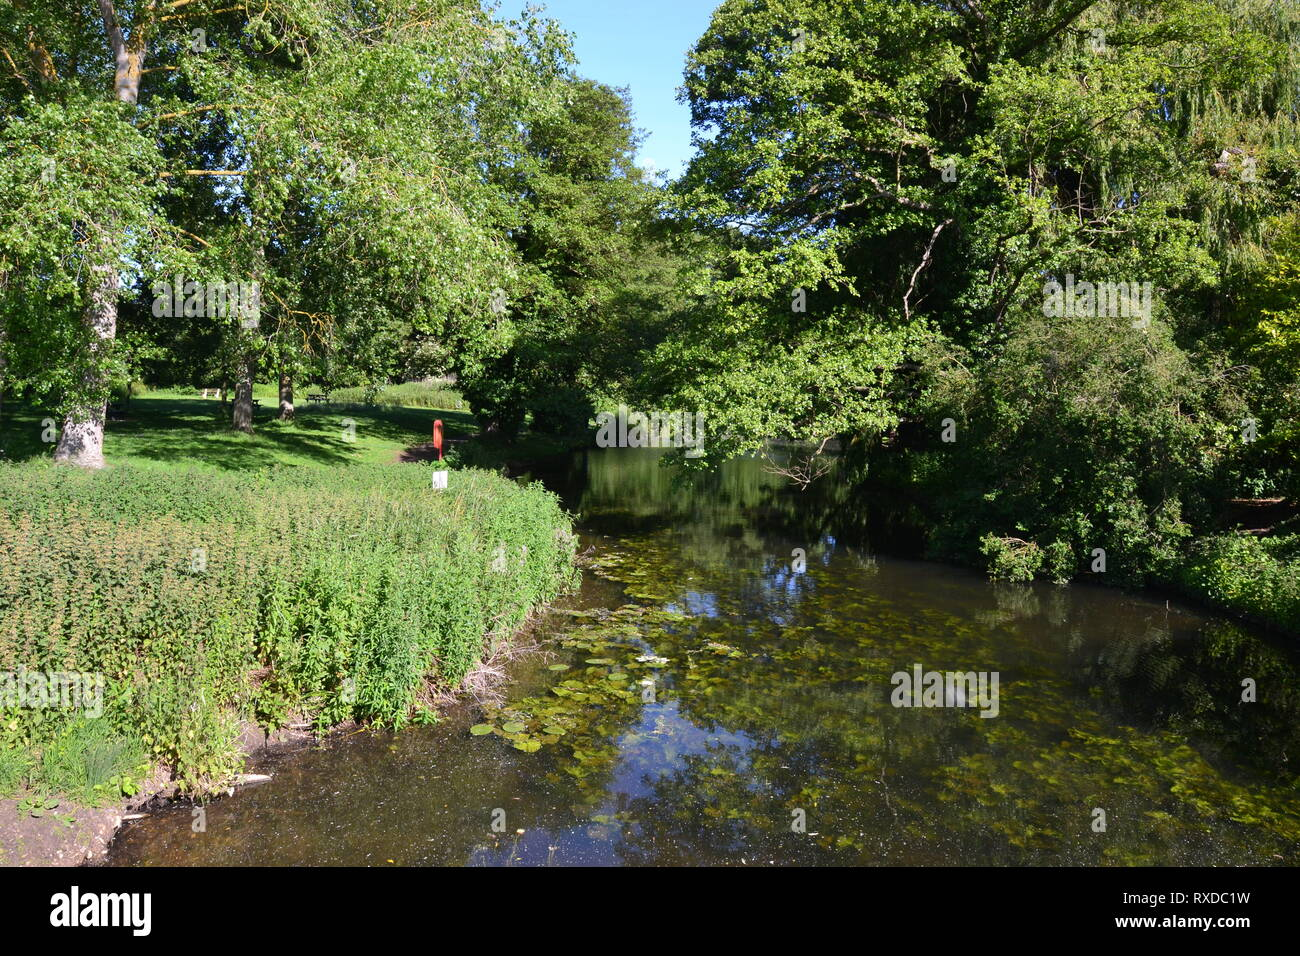 The River Box at Polstead, Suffolk, UK - Stock Image